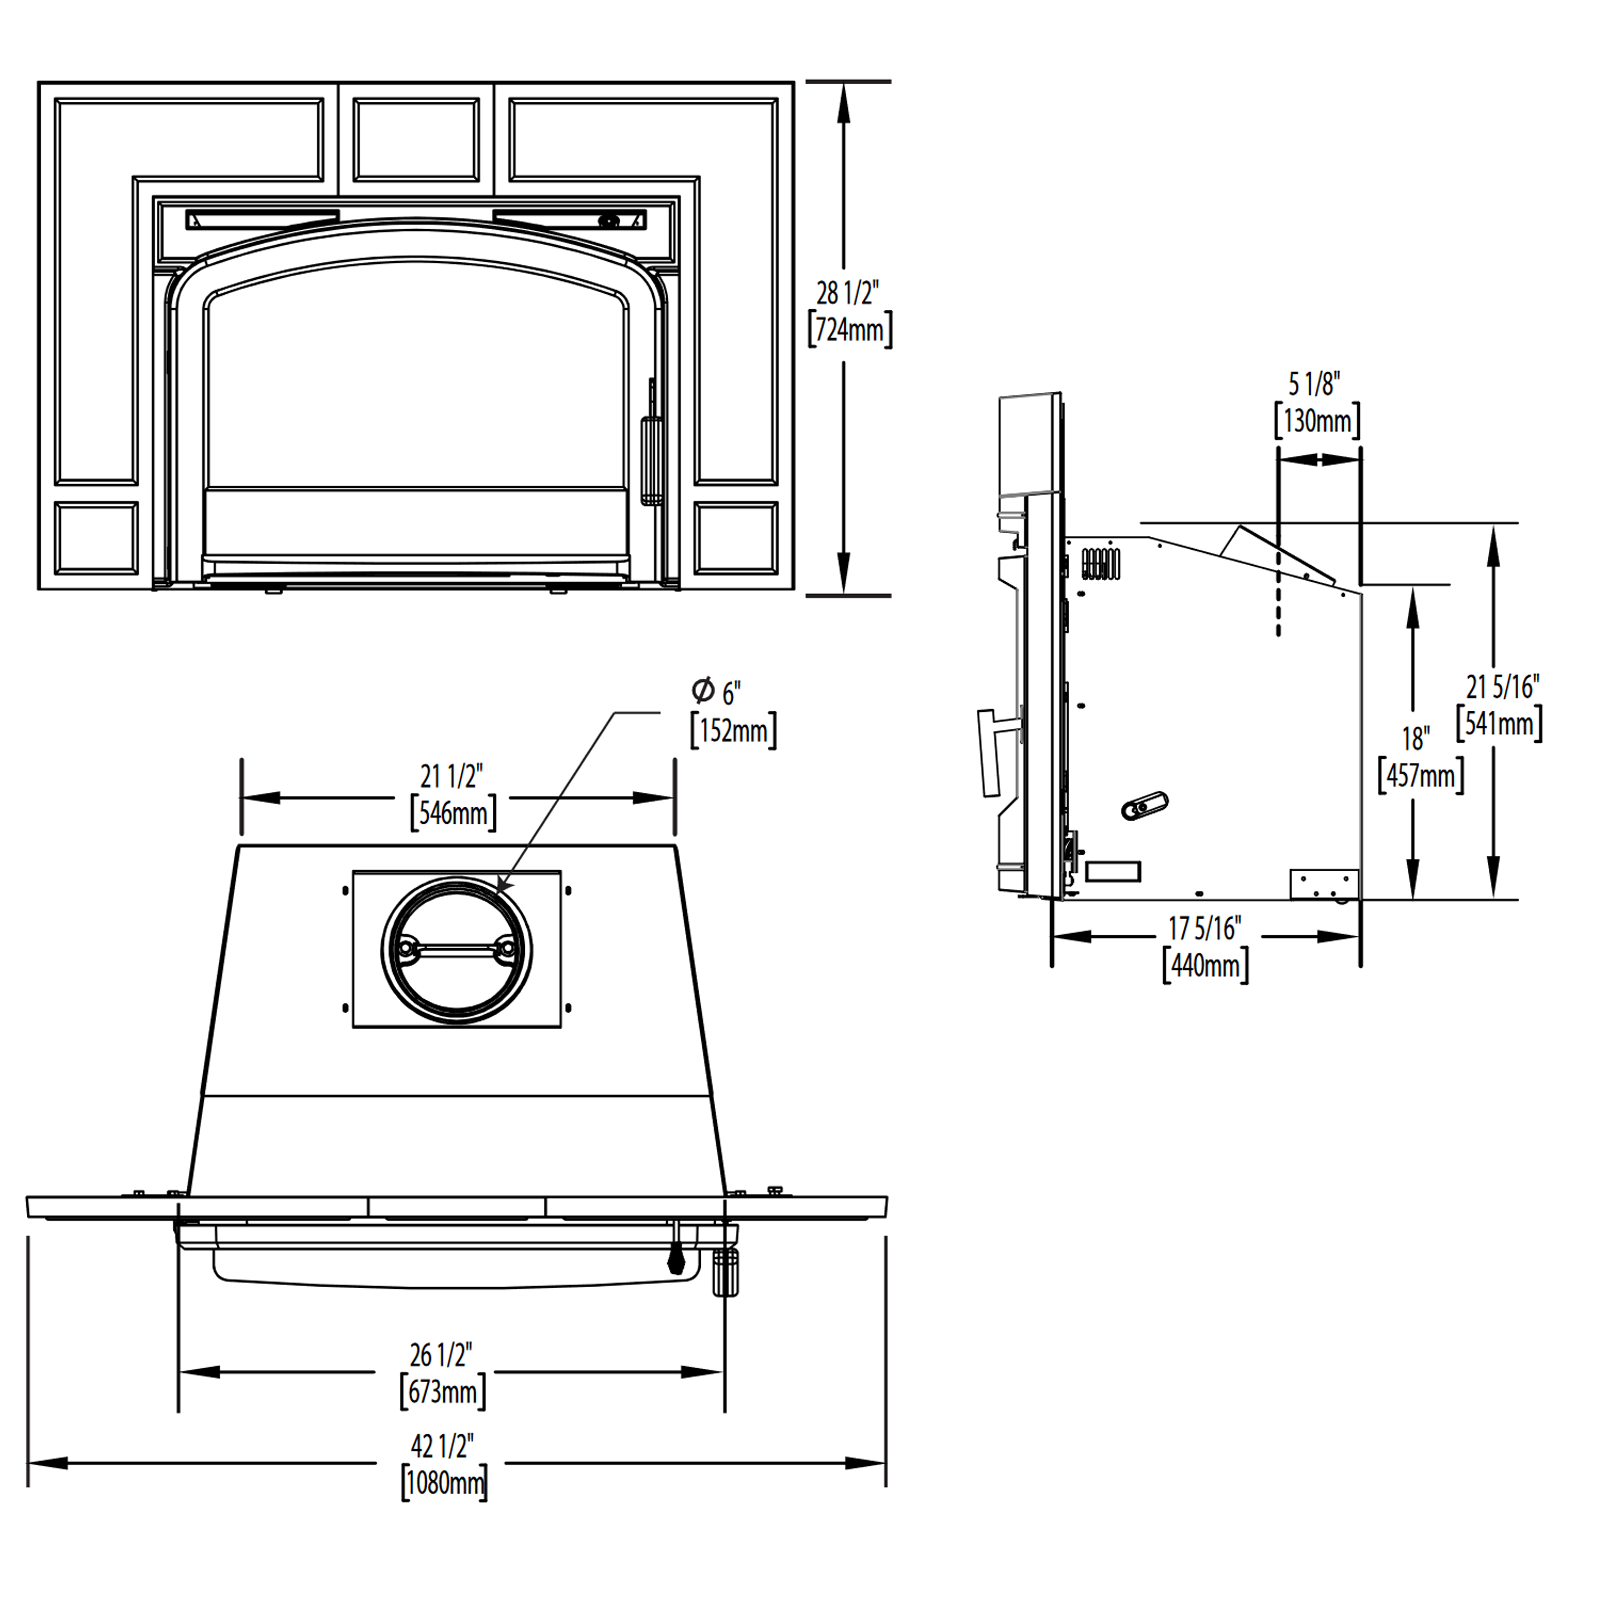 EPI3T Technical Drawing 1